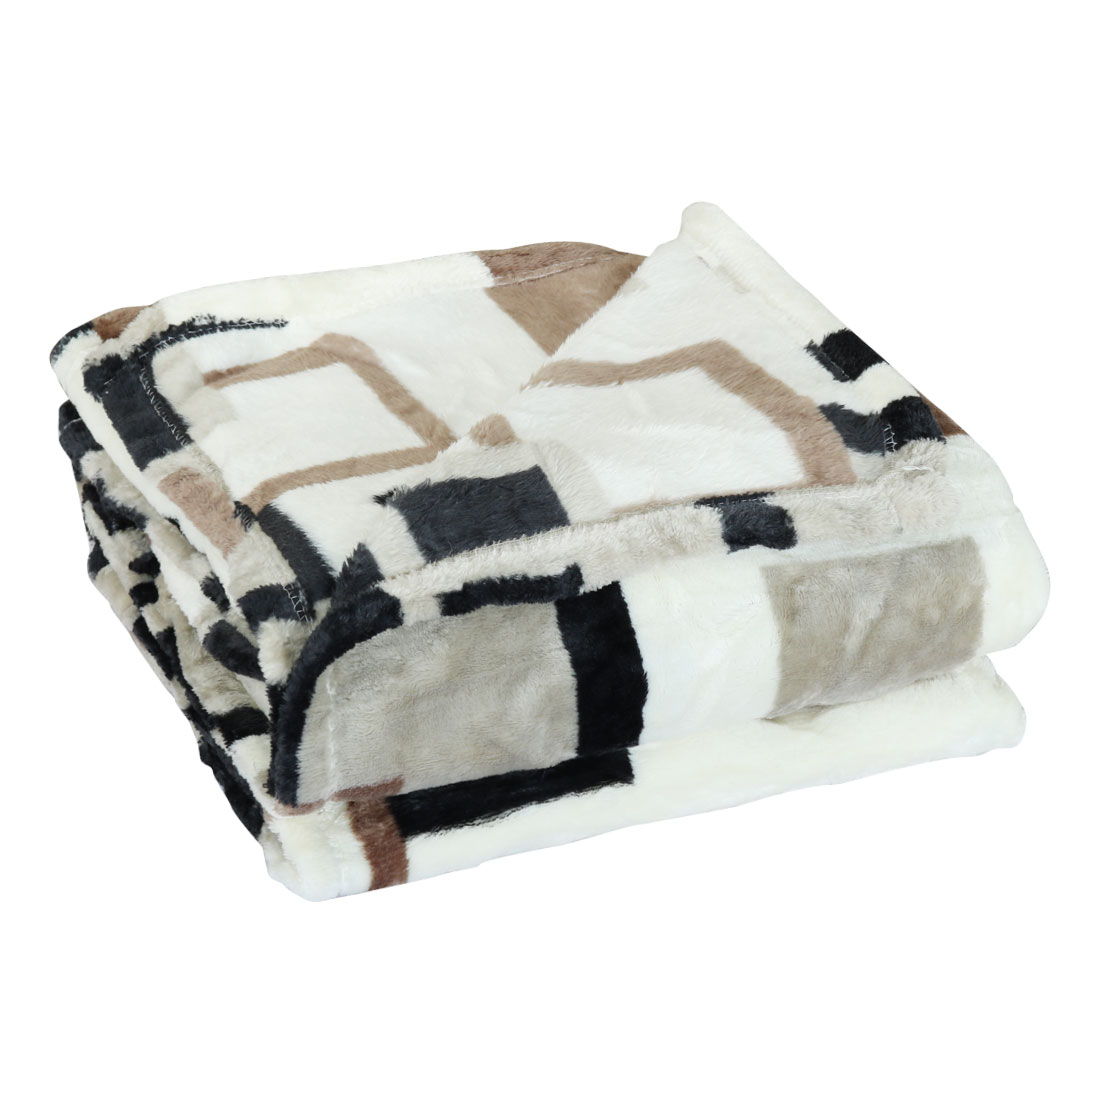 180 x 200cm Queen Size Home Bedroom Bed Sofa Warm Plush Couch Throws Blanket Soft Grid Pattern Black